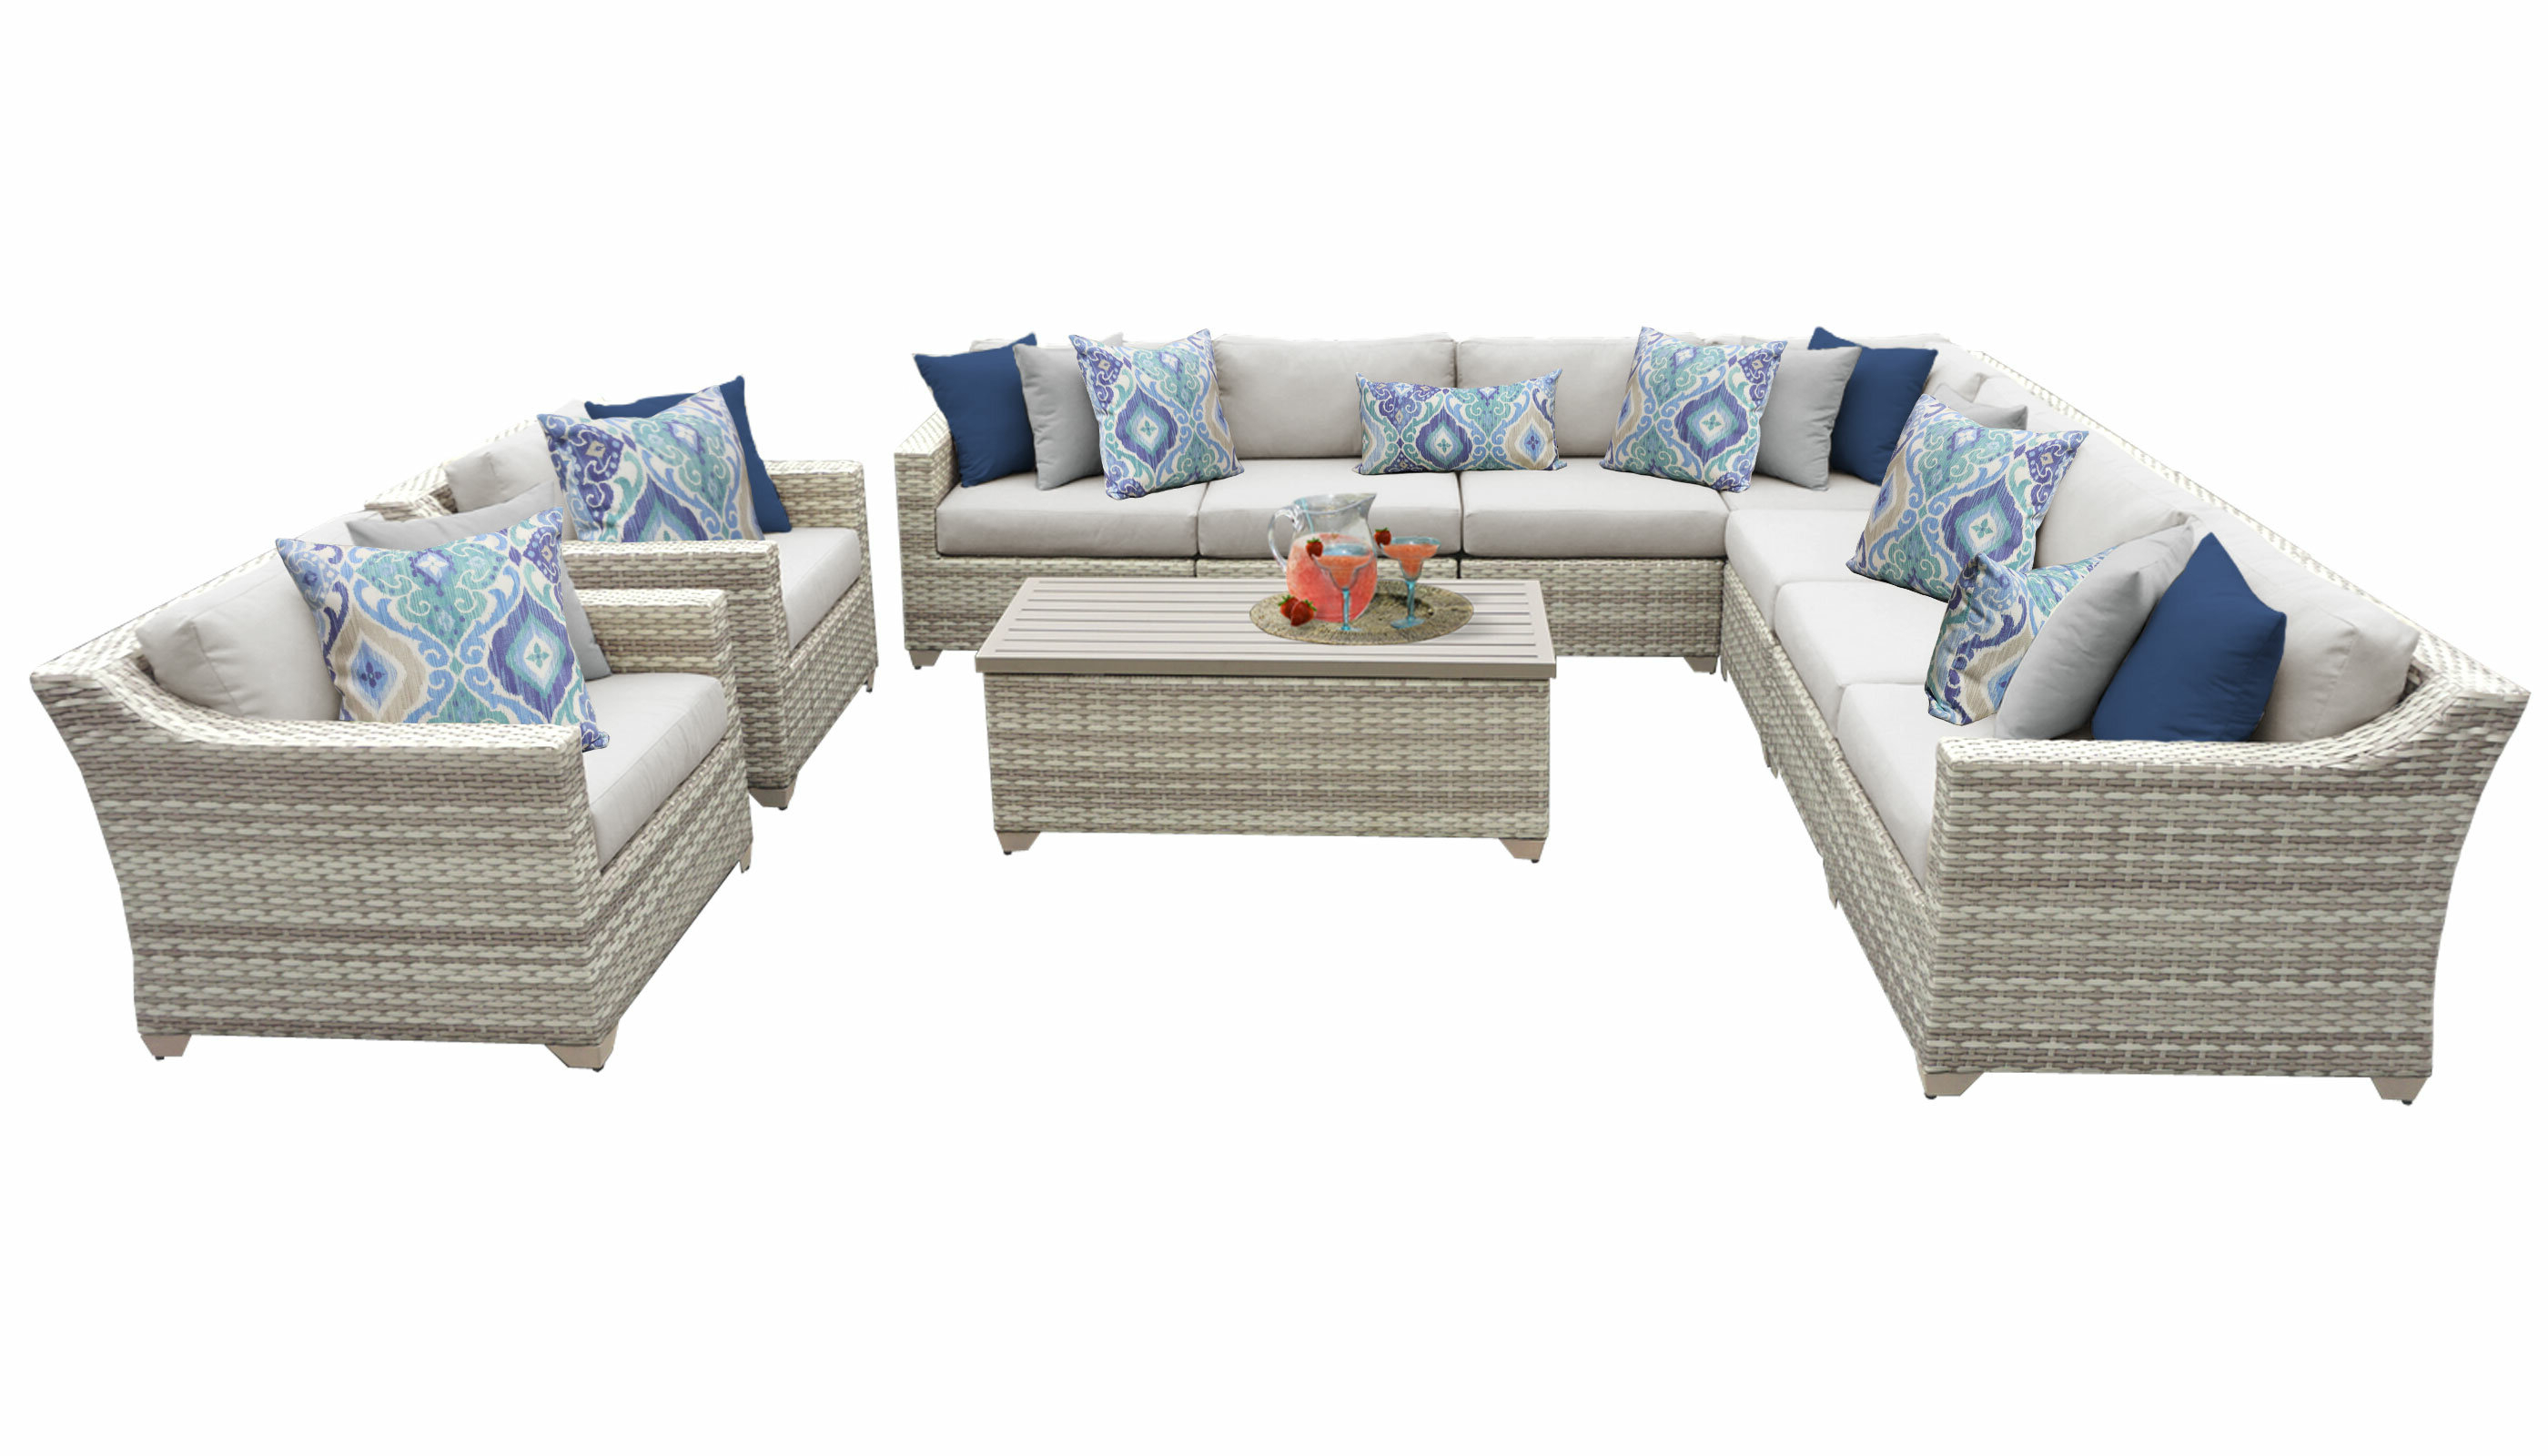 Well Liked Falmouth 10 Piece Sectional Seating Group With Cushions Intended For Falmouth Patio Sofas With Cushions (Gallery 17 of 20)